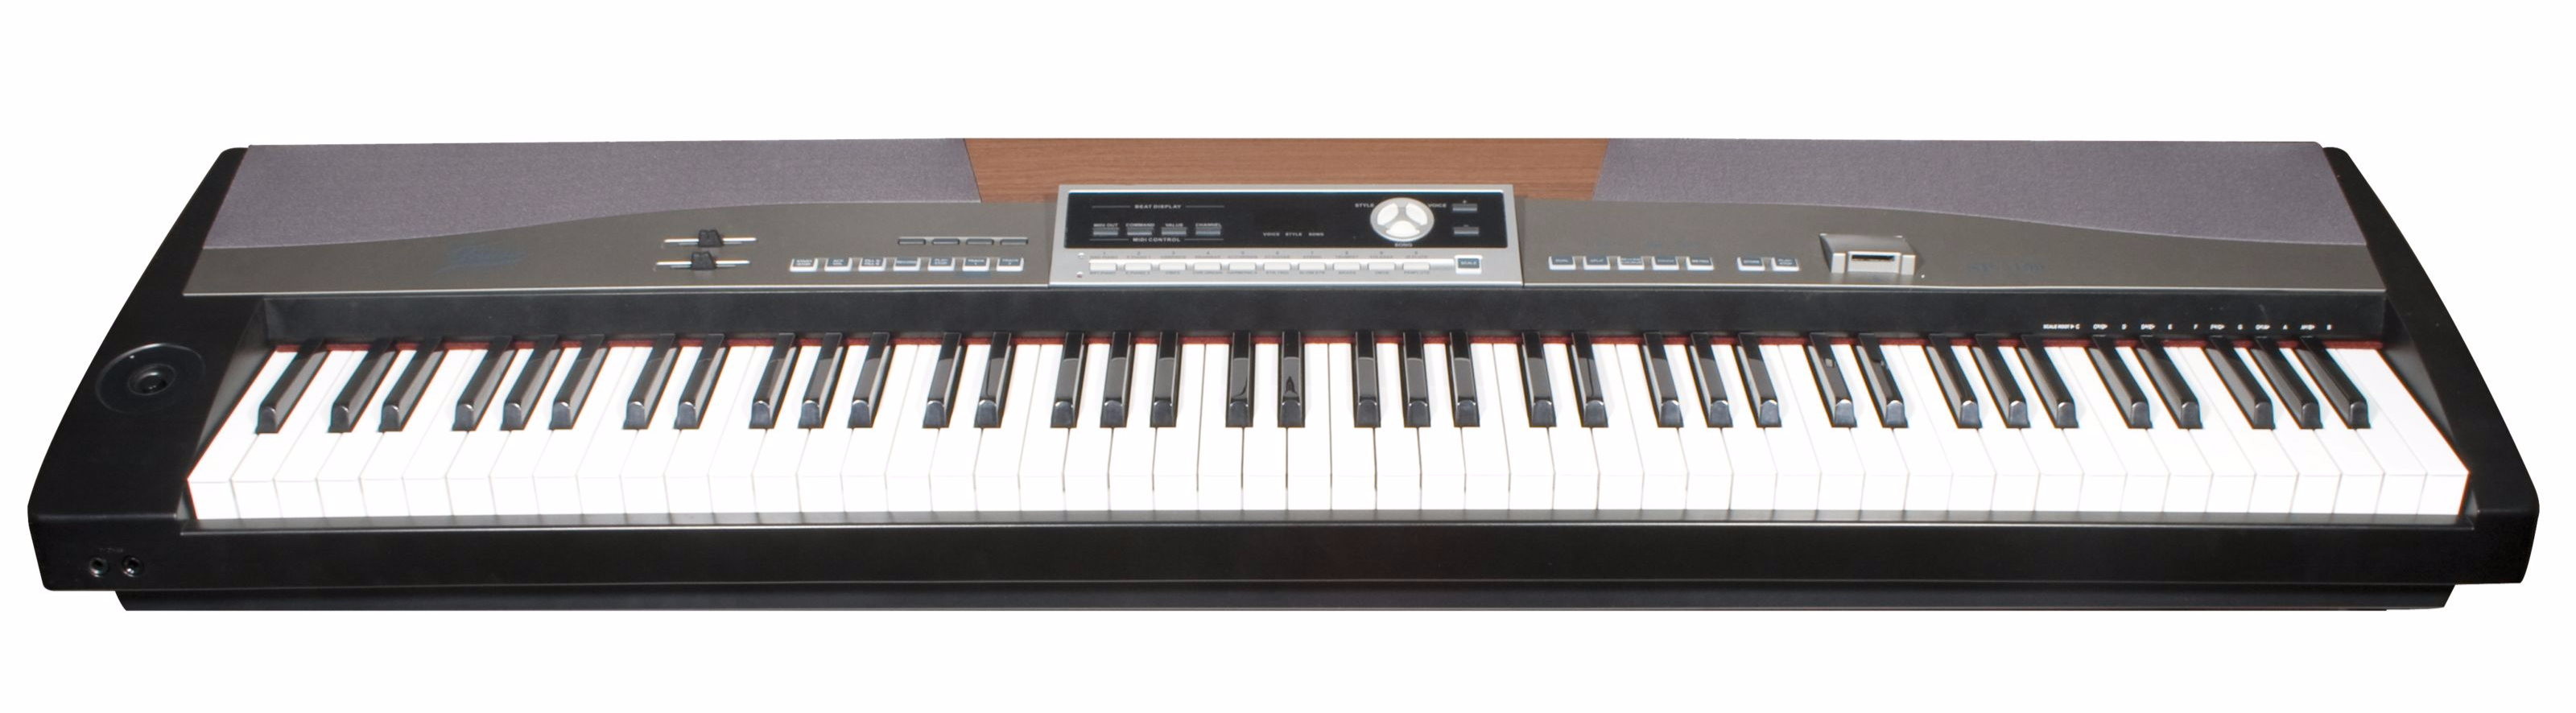 FAME SP-5100 Stage Piano